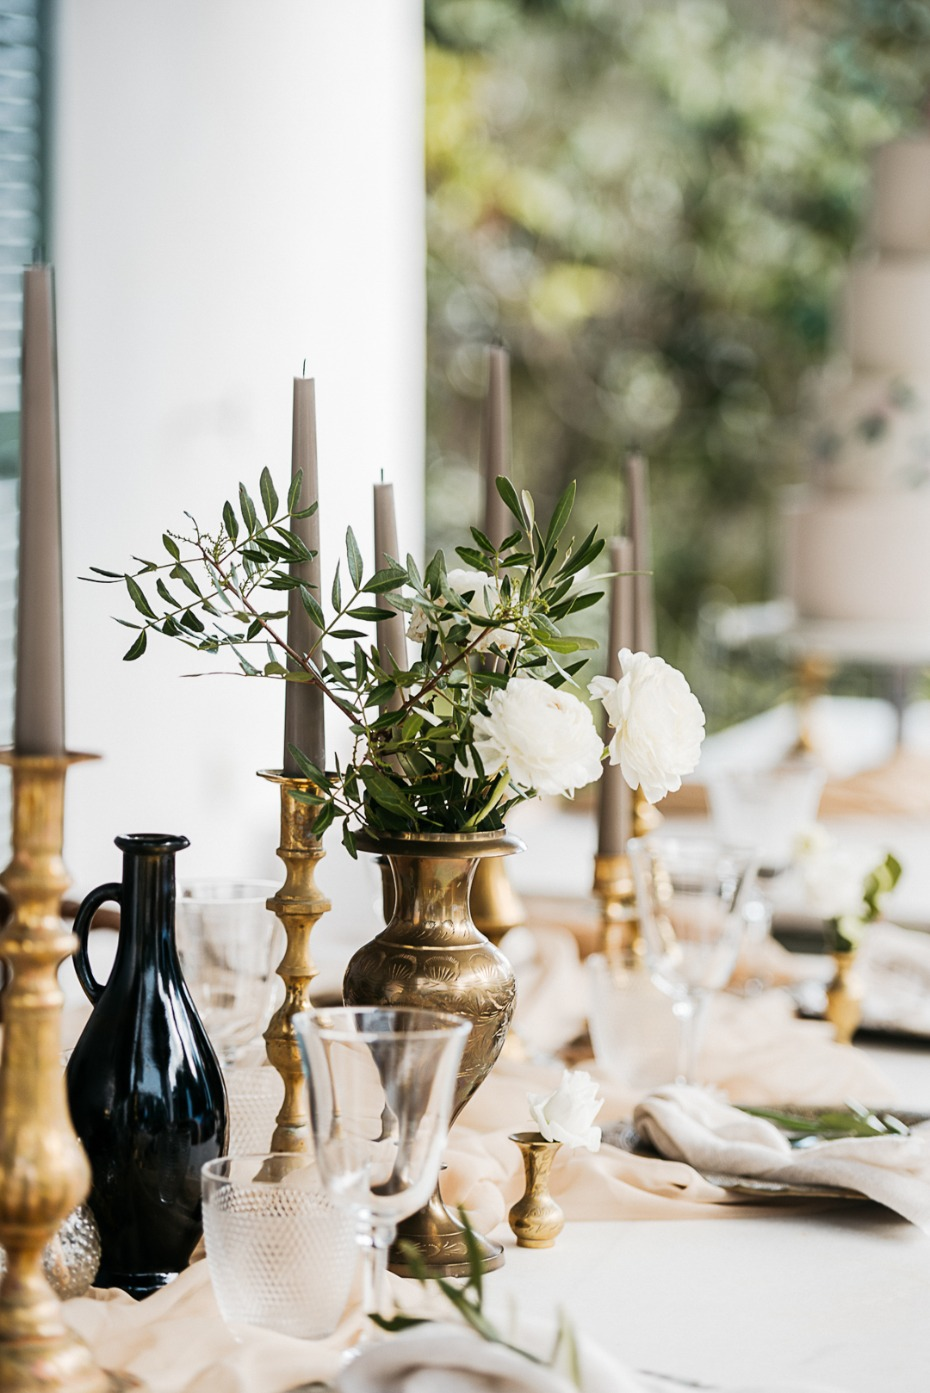 wedding table decor with Spanish flair